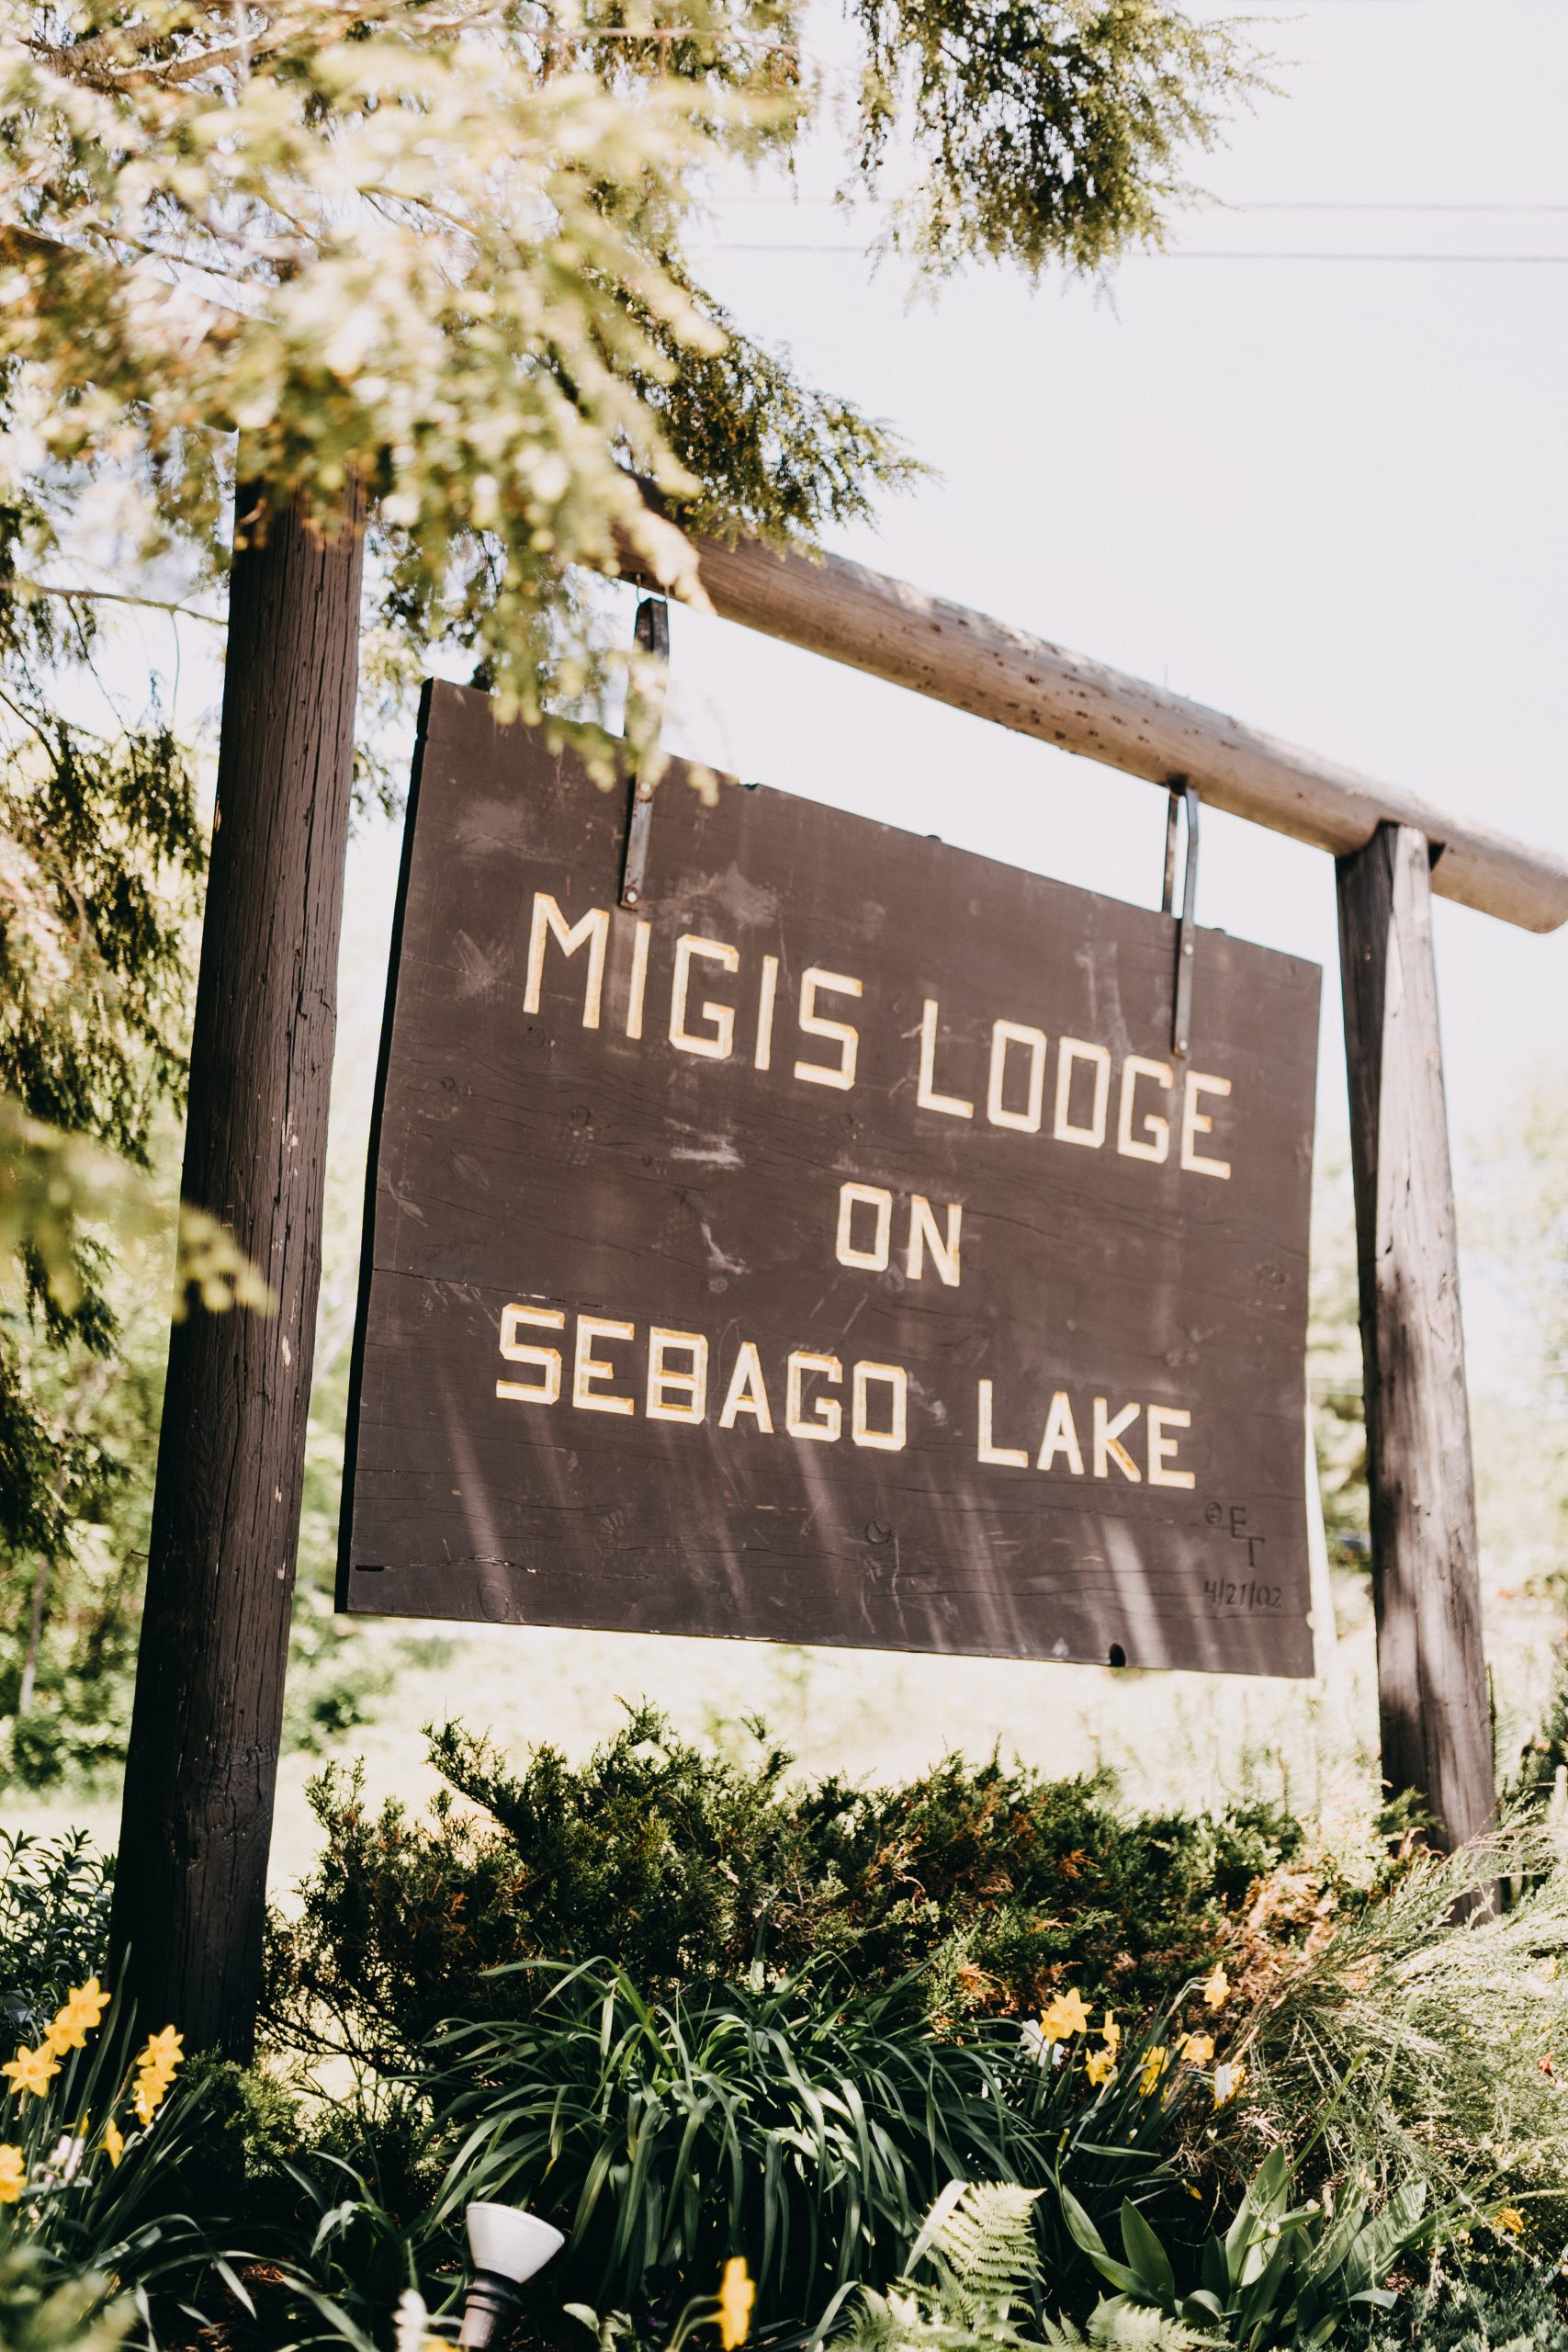 Sign displayed at Migis Lodge on Sebago Lake.